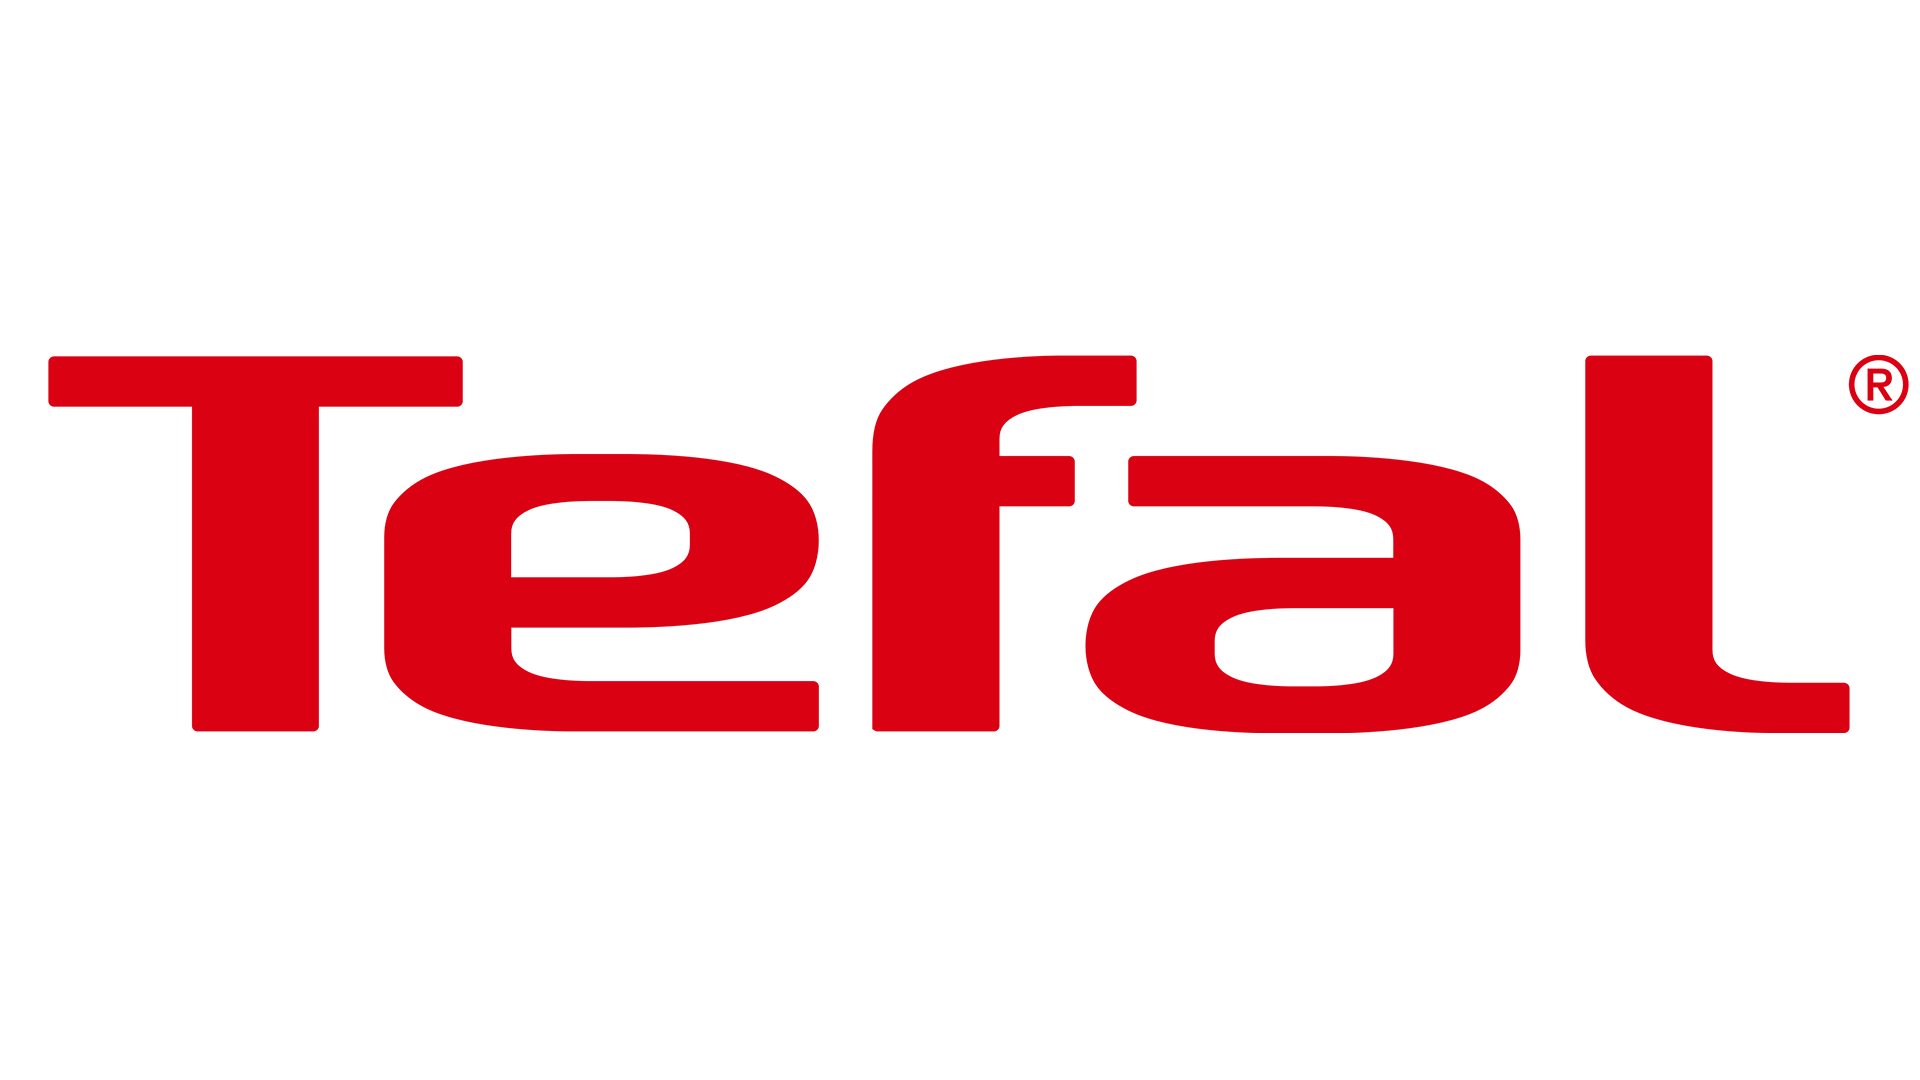 Tefal